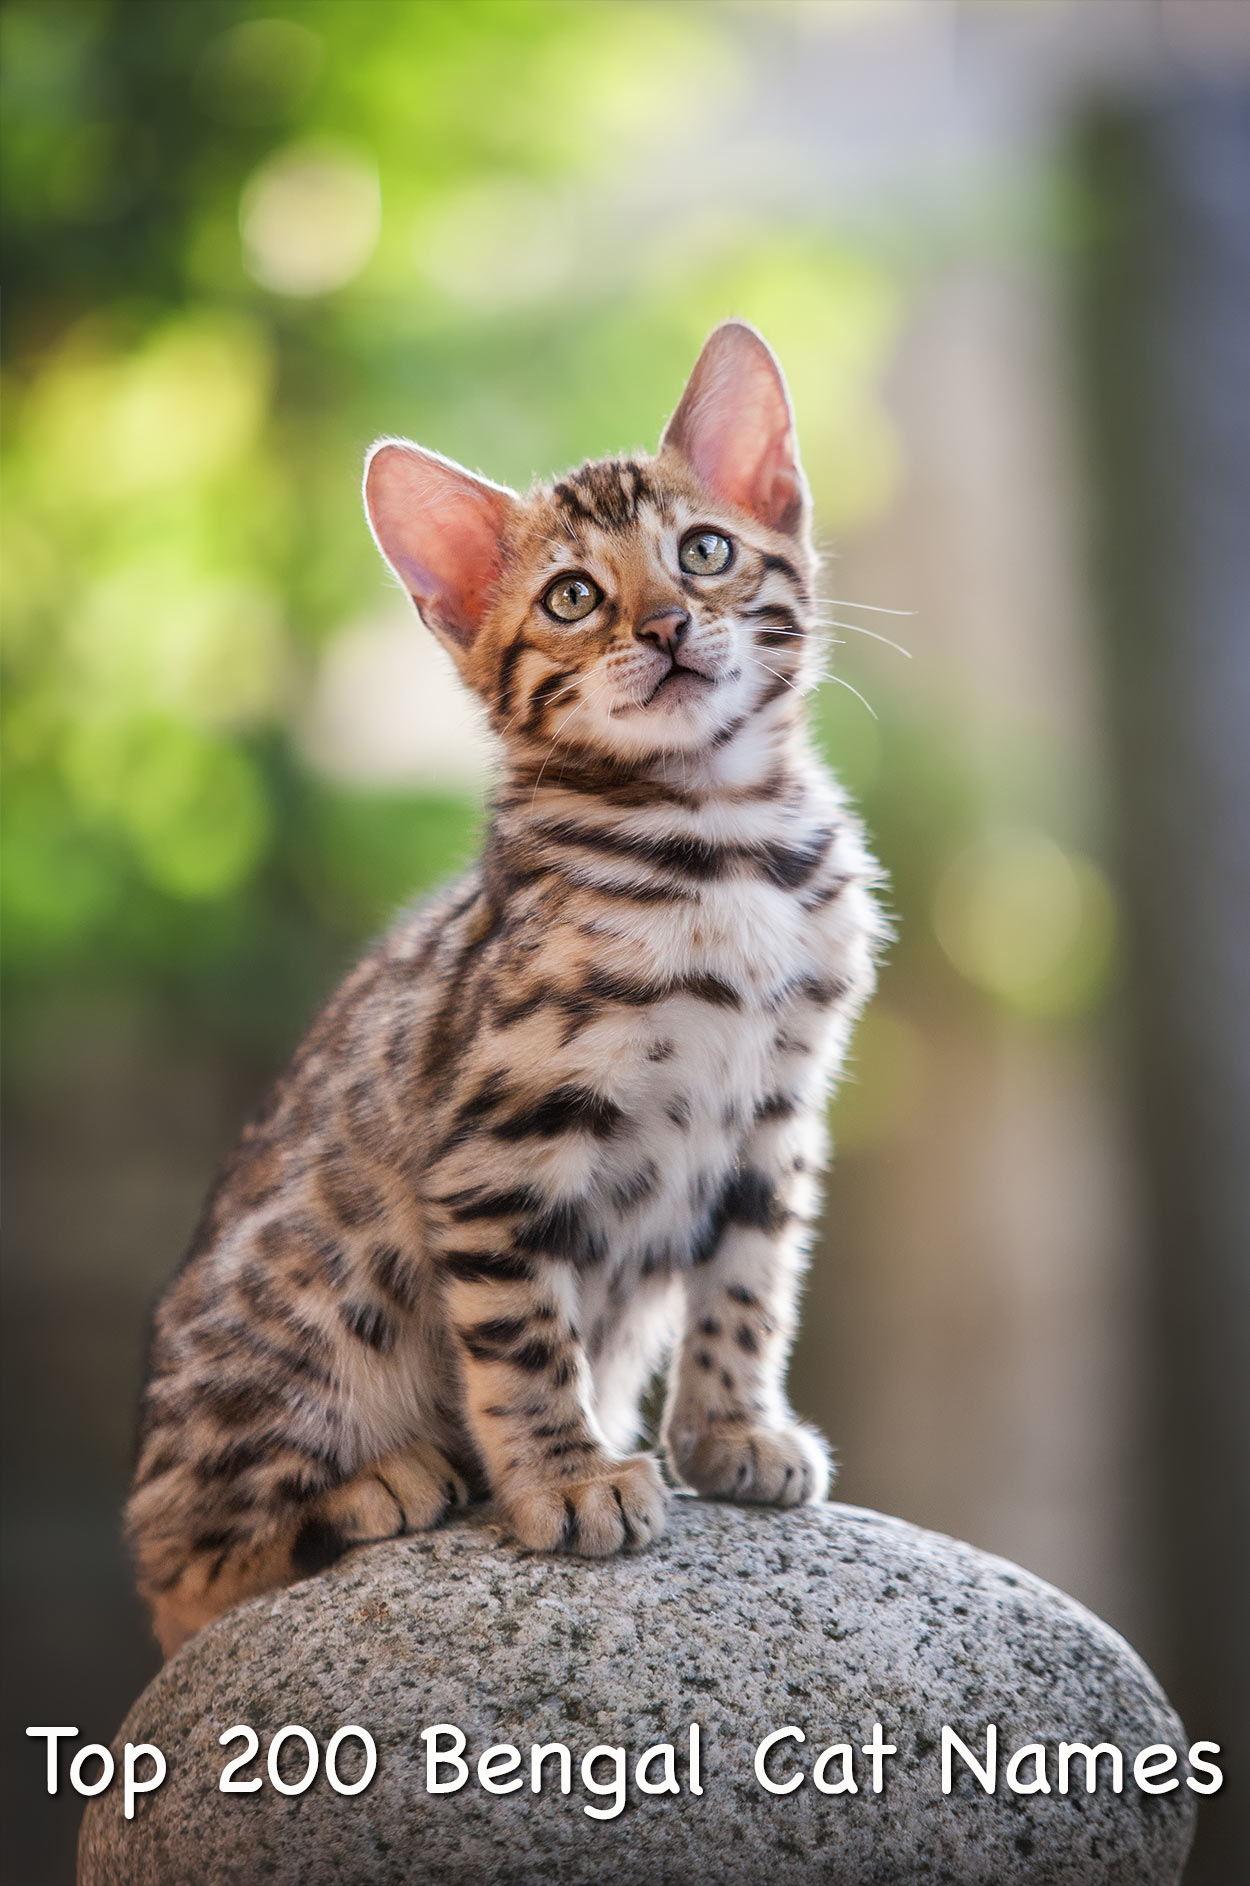 Bengal Cat Names - 200 Ideas For Naming Your Male or Female